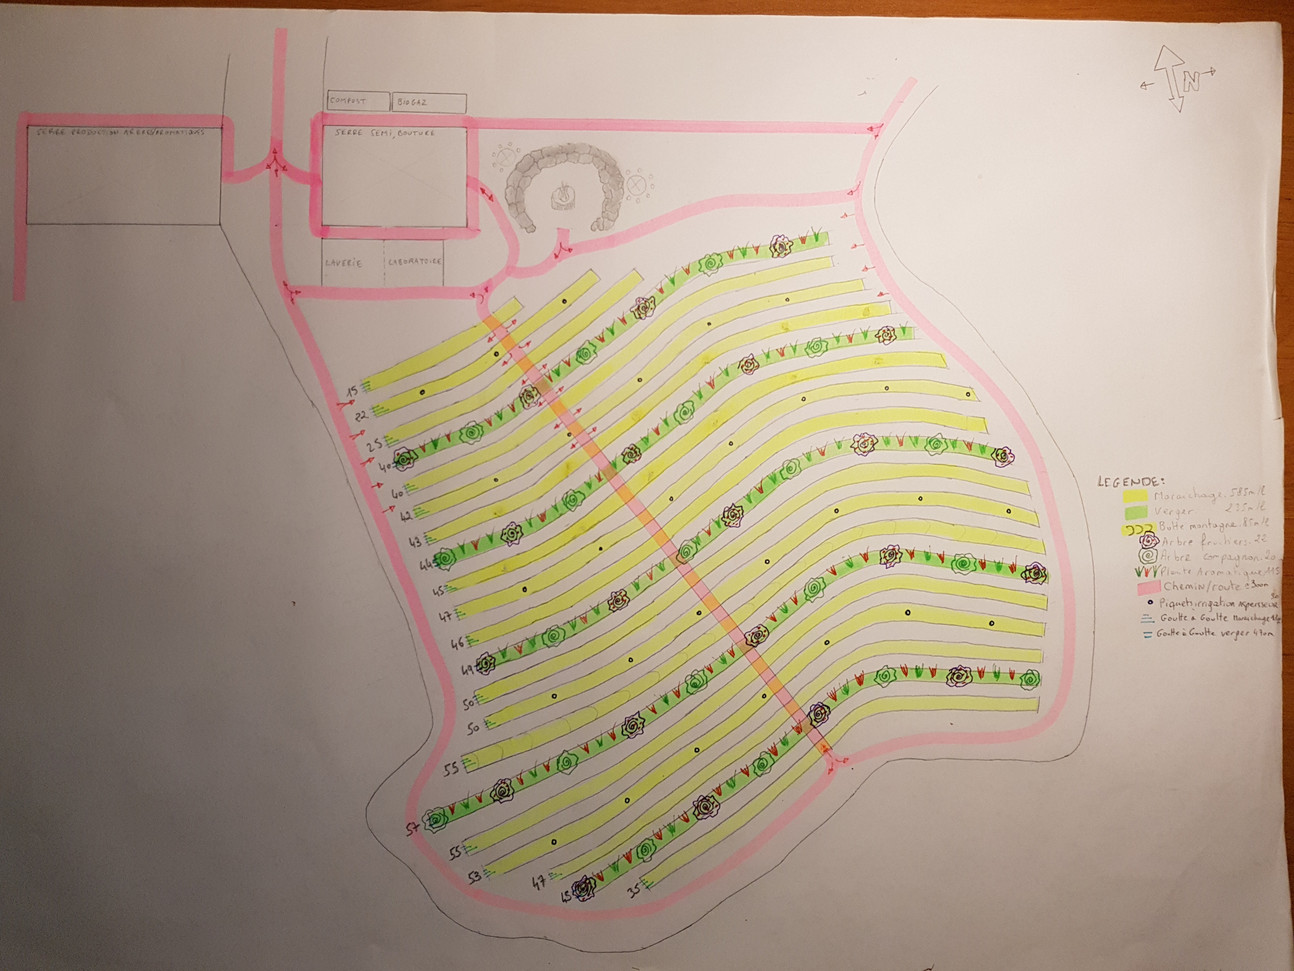 Design centre pilote Appietto, plan jardin de production...